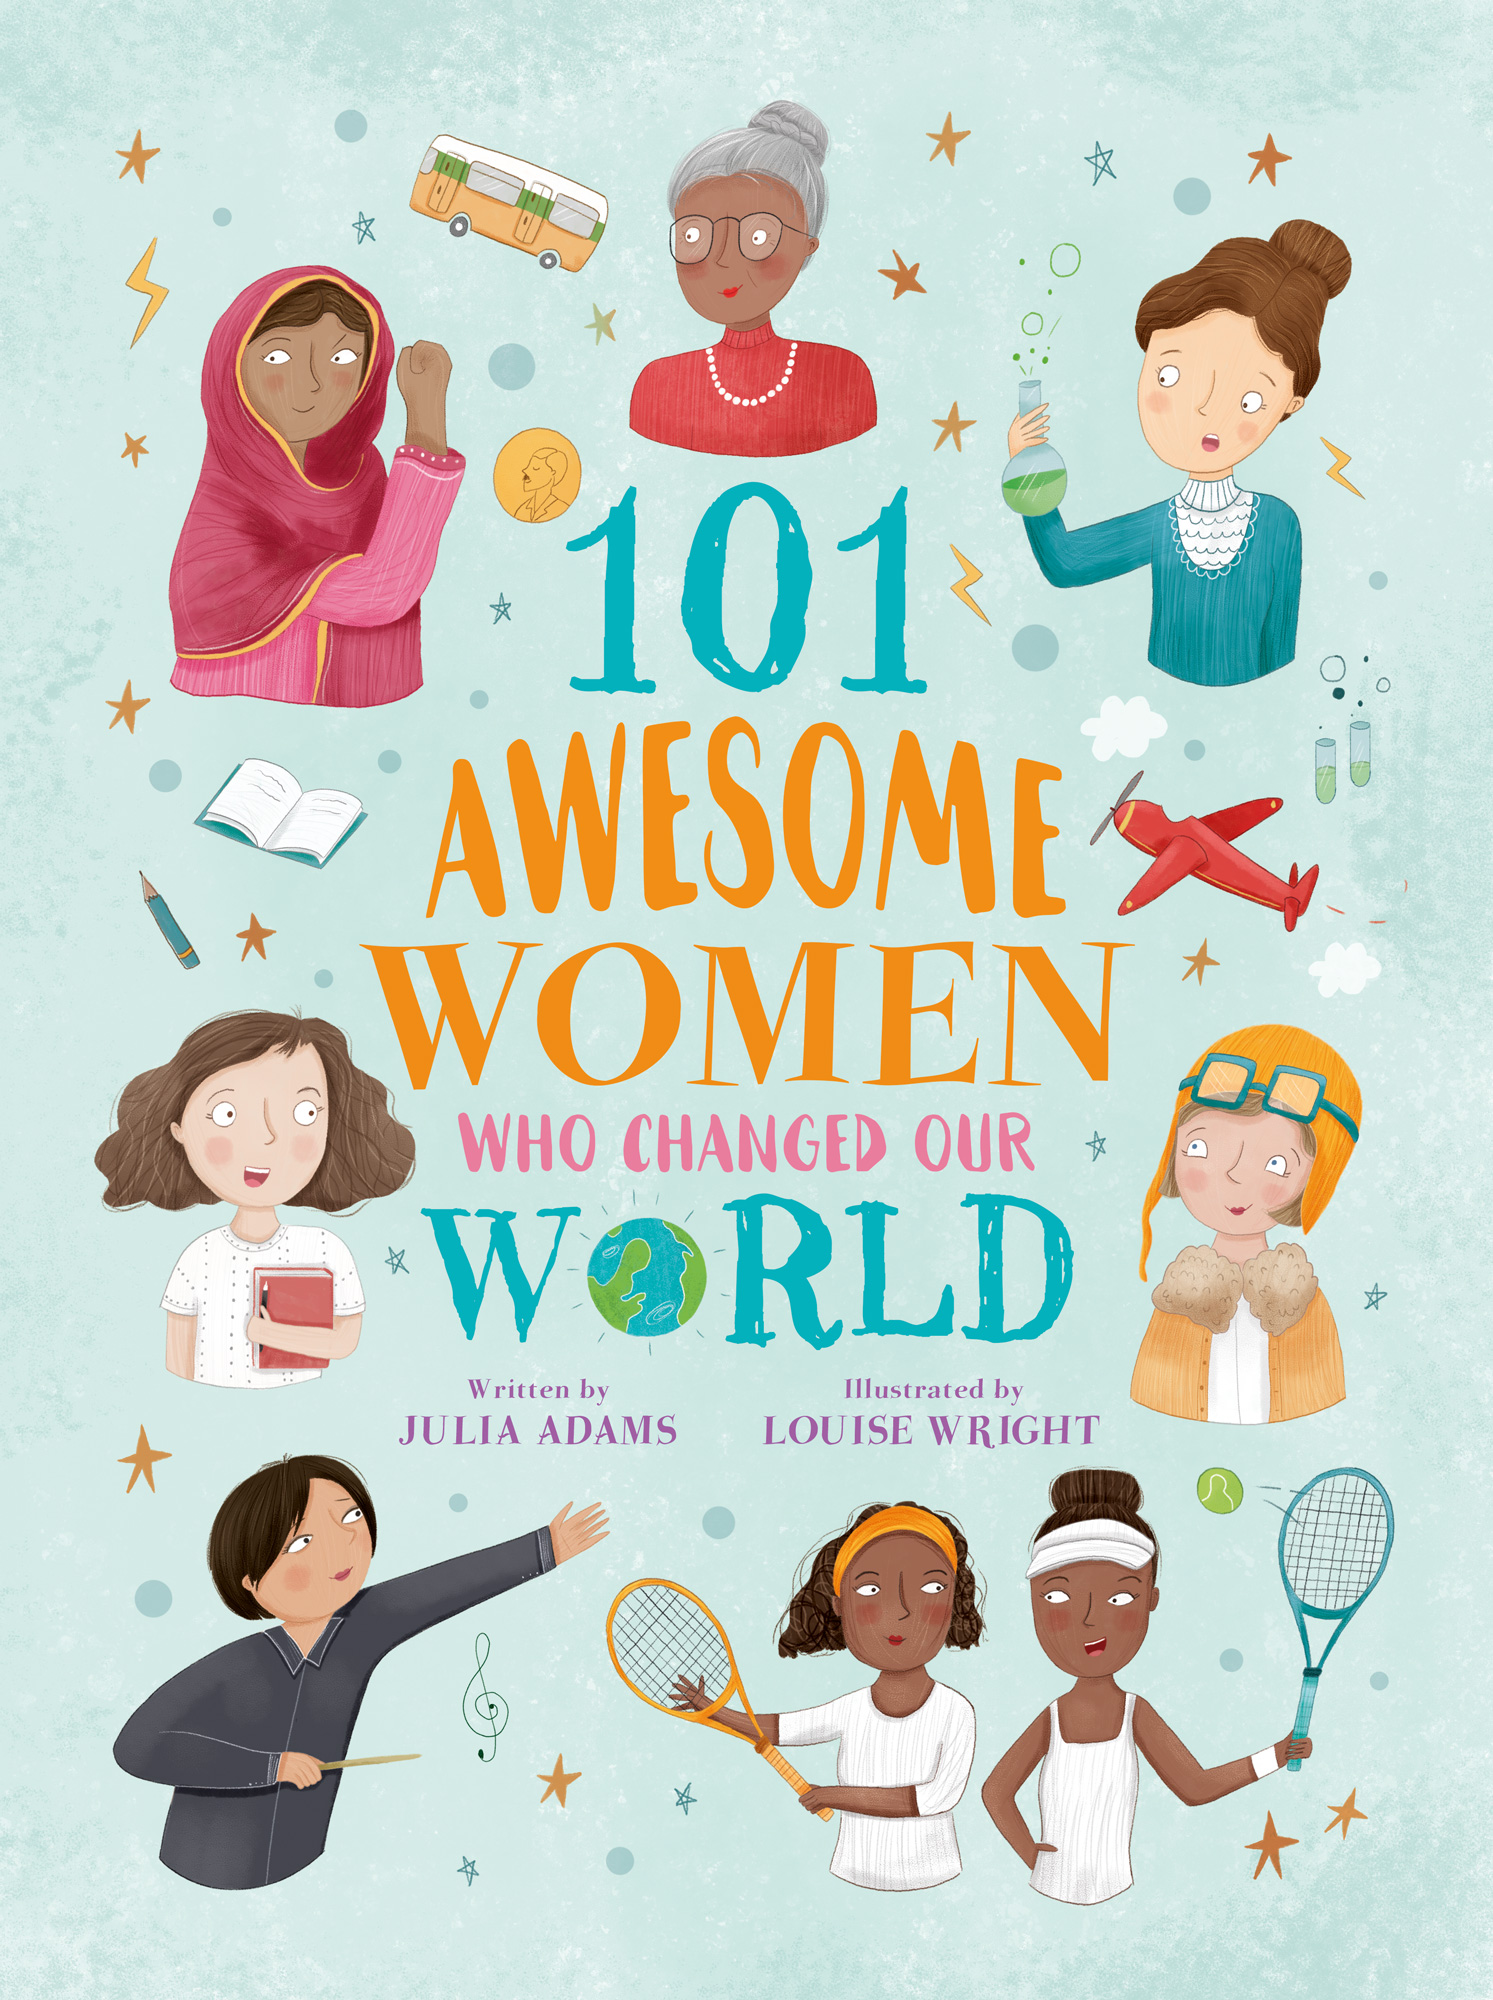 101 awesome women who changed the world - bibliophile review